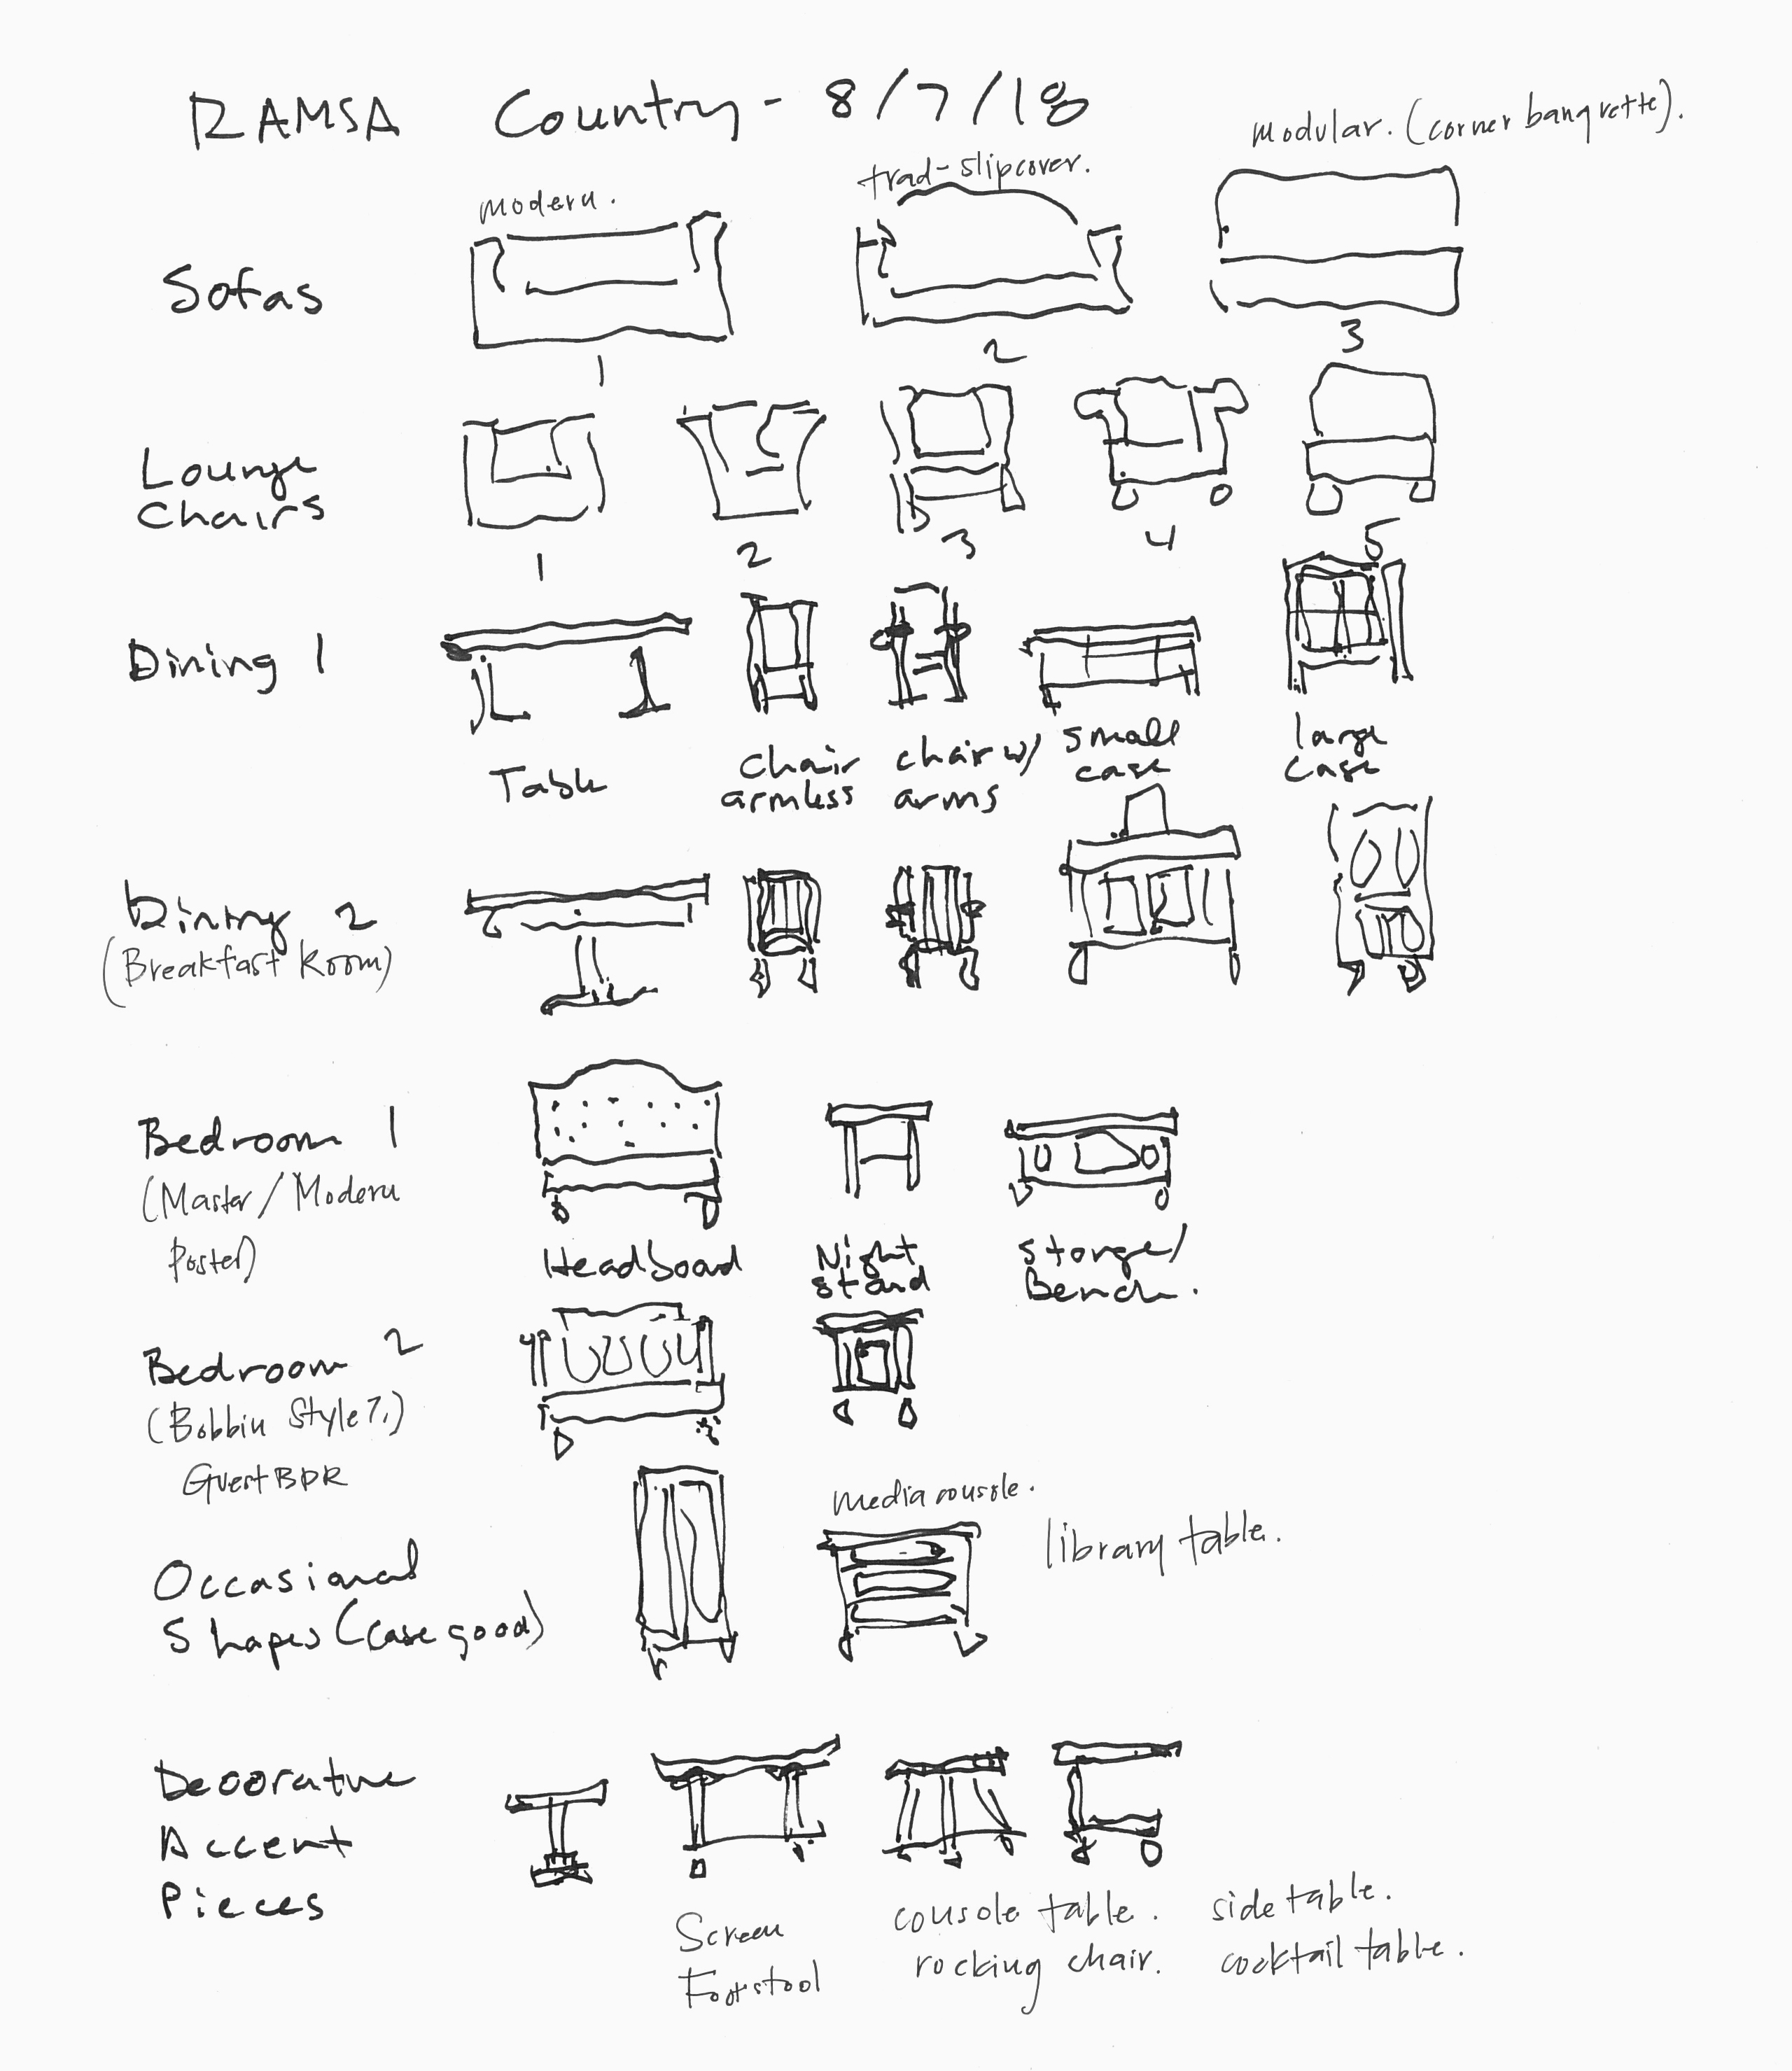 <p><span><span><span><span>Initial product matrix for the Ferrell Mittman collection. Drawing Alexander Lamis, 2018.</span></span></span></span></p>